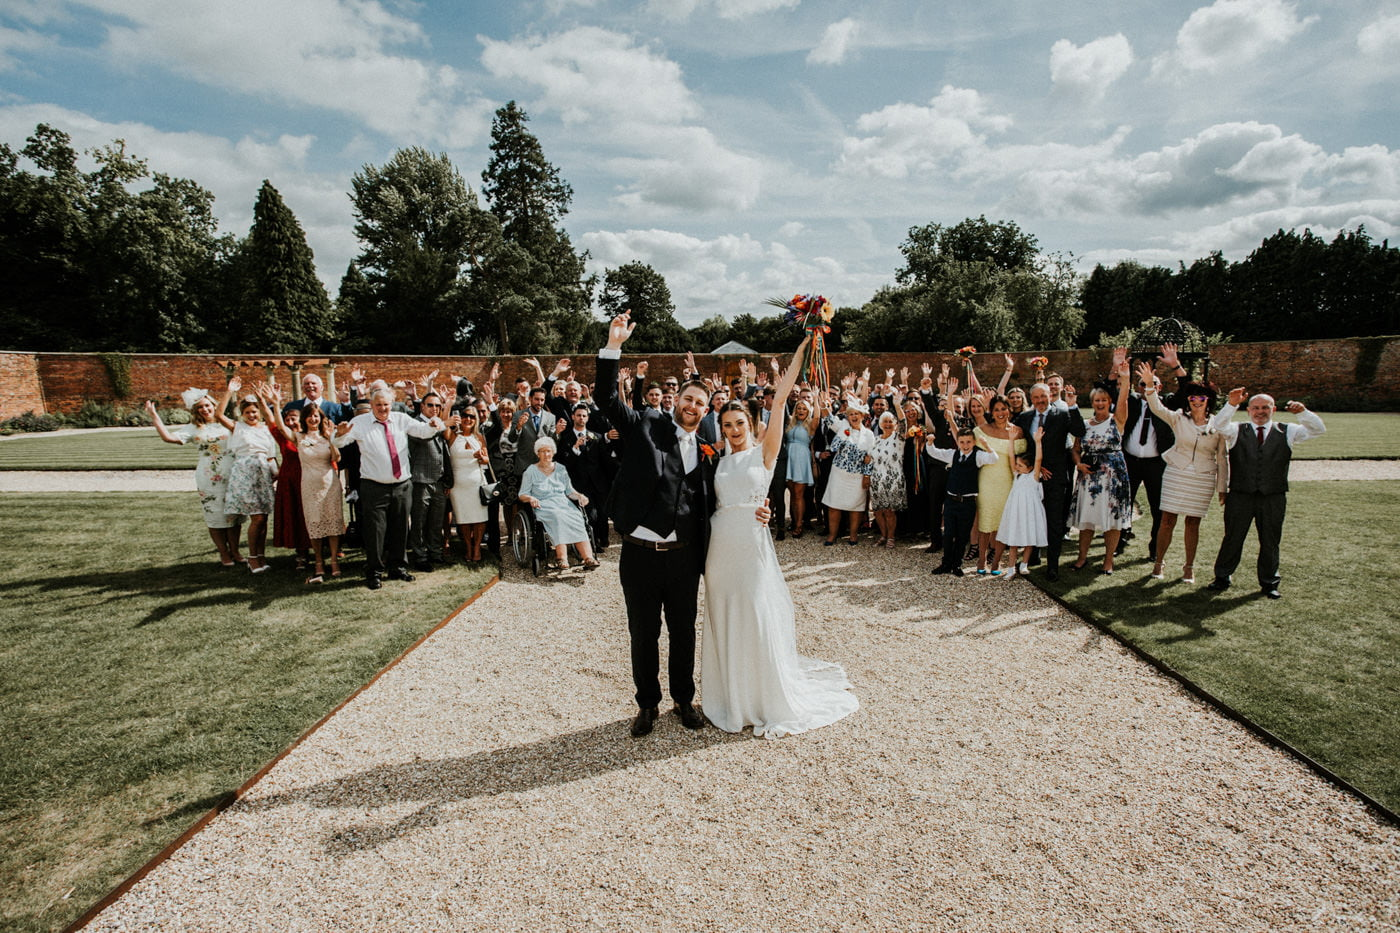 Katy and Adam, Elmhay Park, Somerset 10